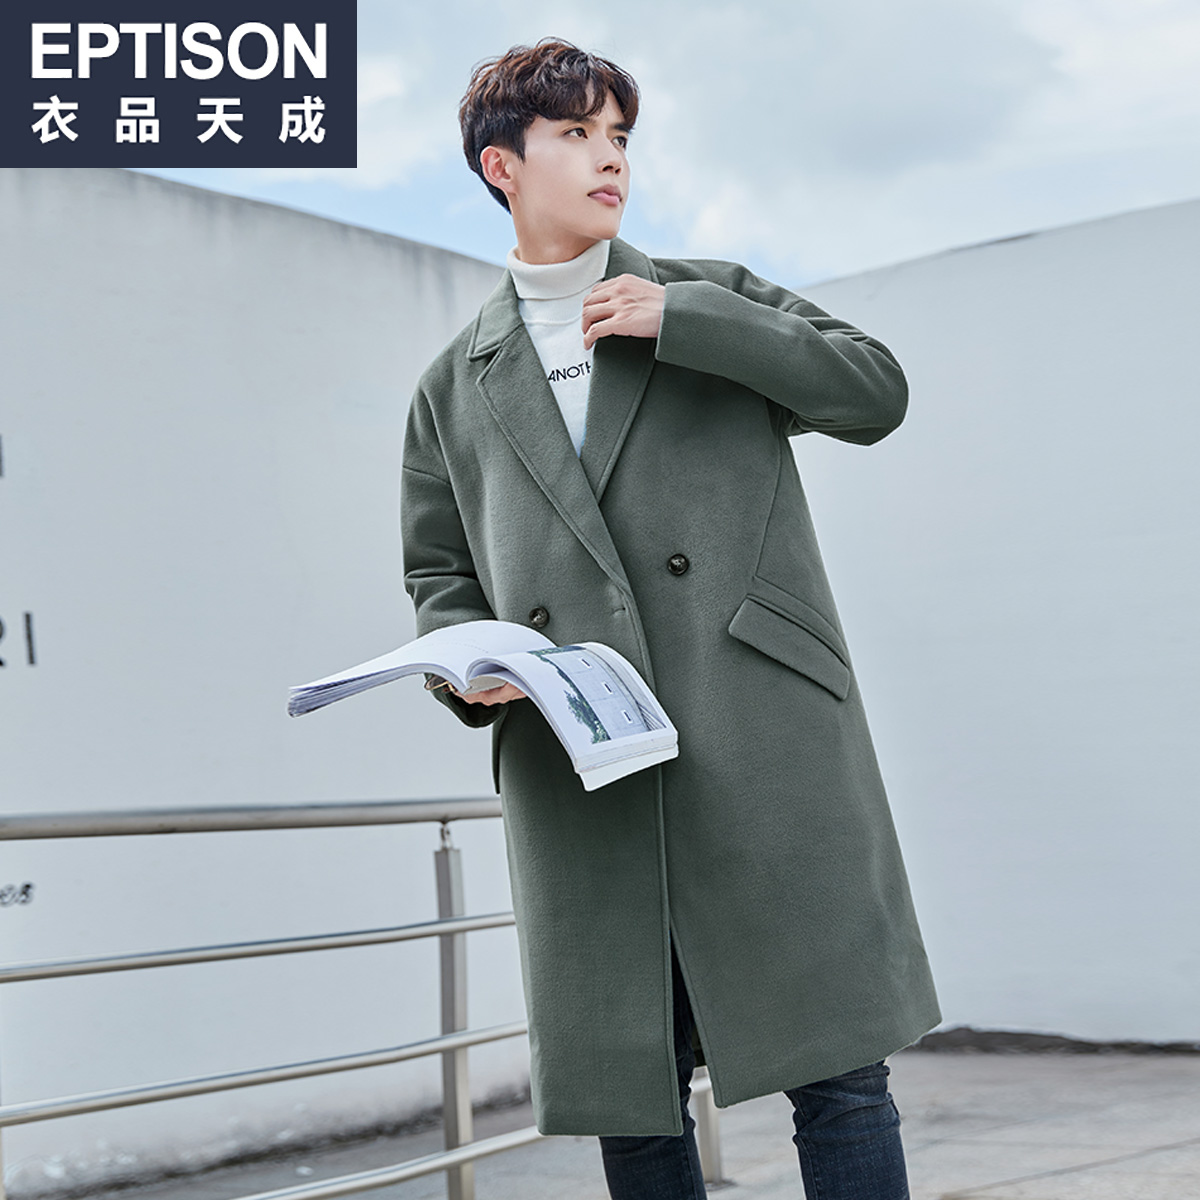 Clothing Tiancheng 2018 Winter new men's wool coat students in the long paragraph loose trend Korean coat